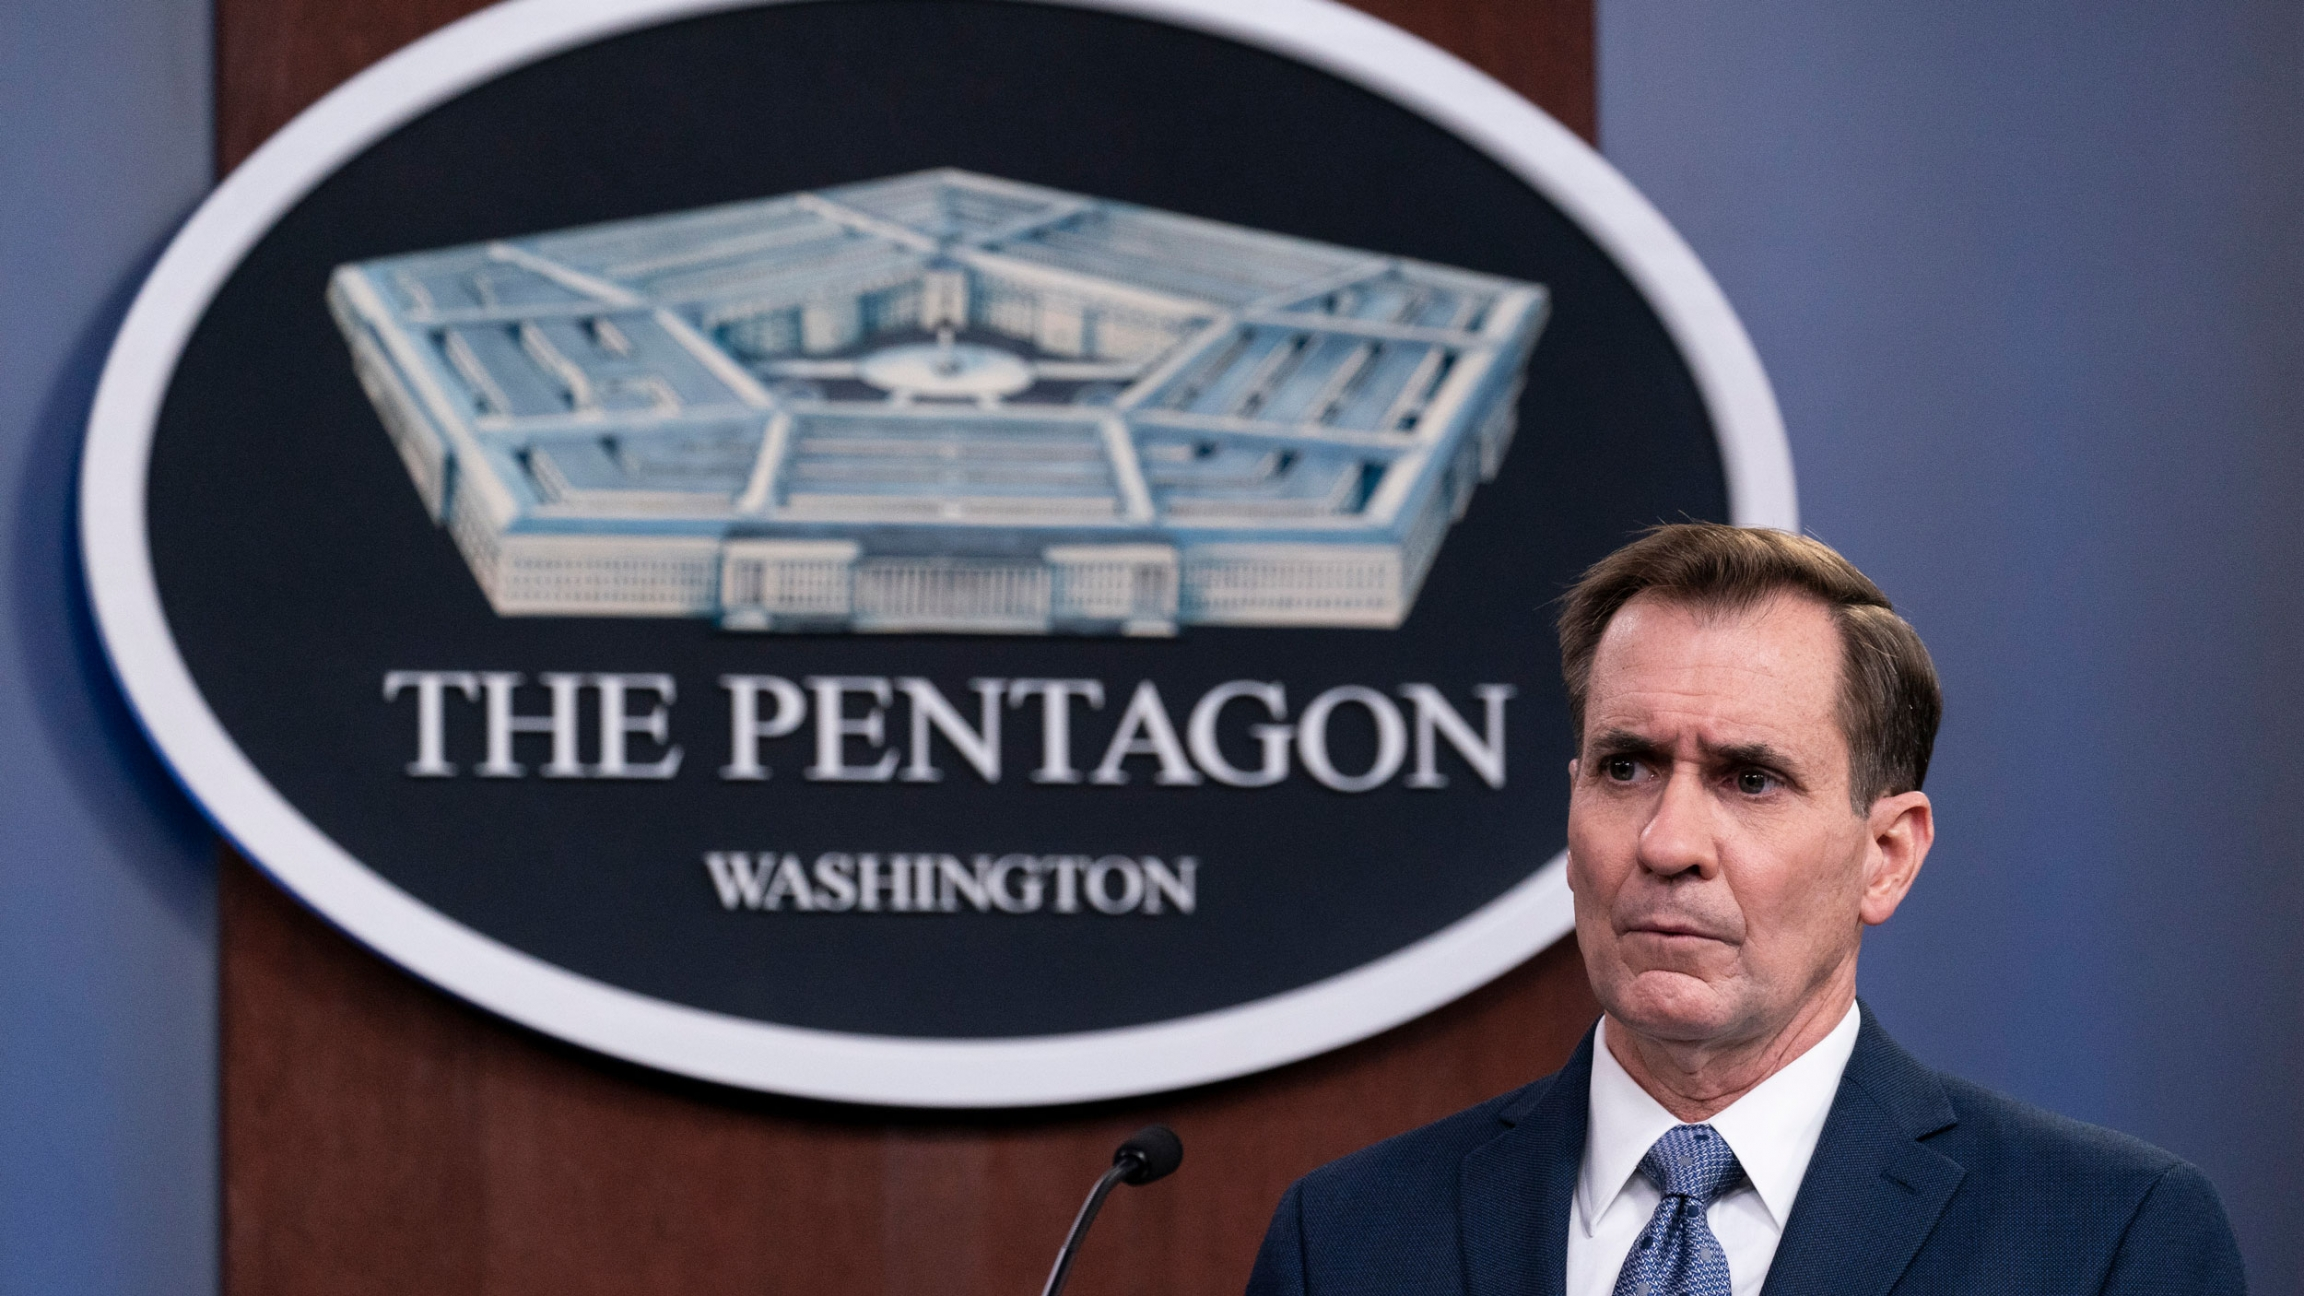 Pentagon spokesman John Kirby is shown wearing a dark blue suit and standing behind a microphone with the logo for the Pentagon behind him.